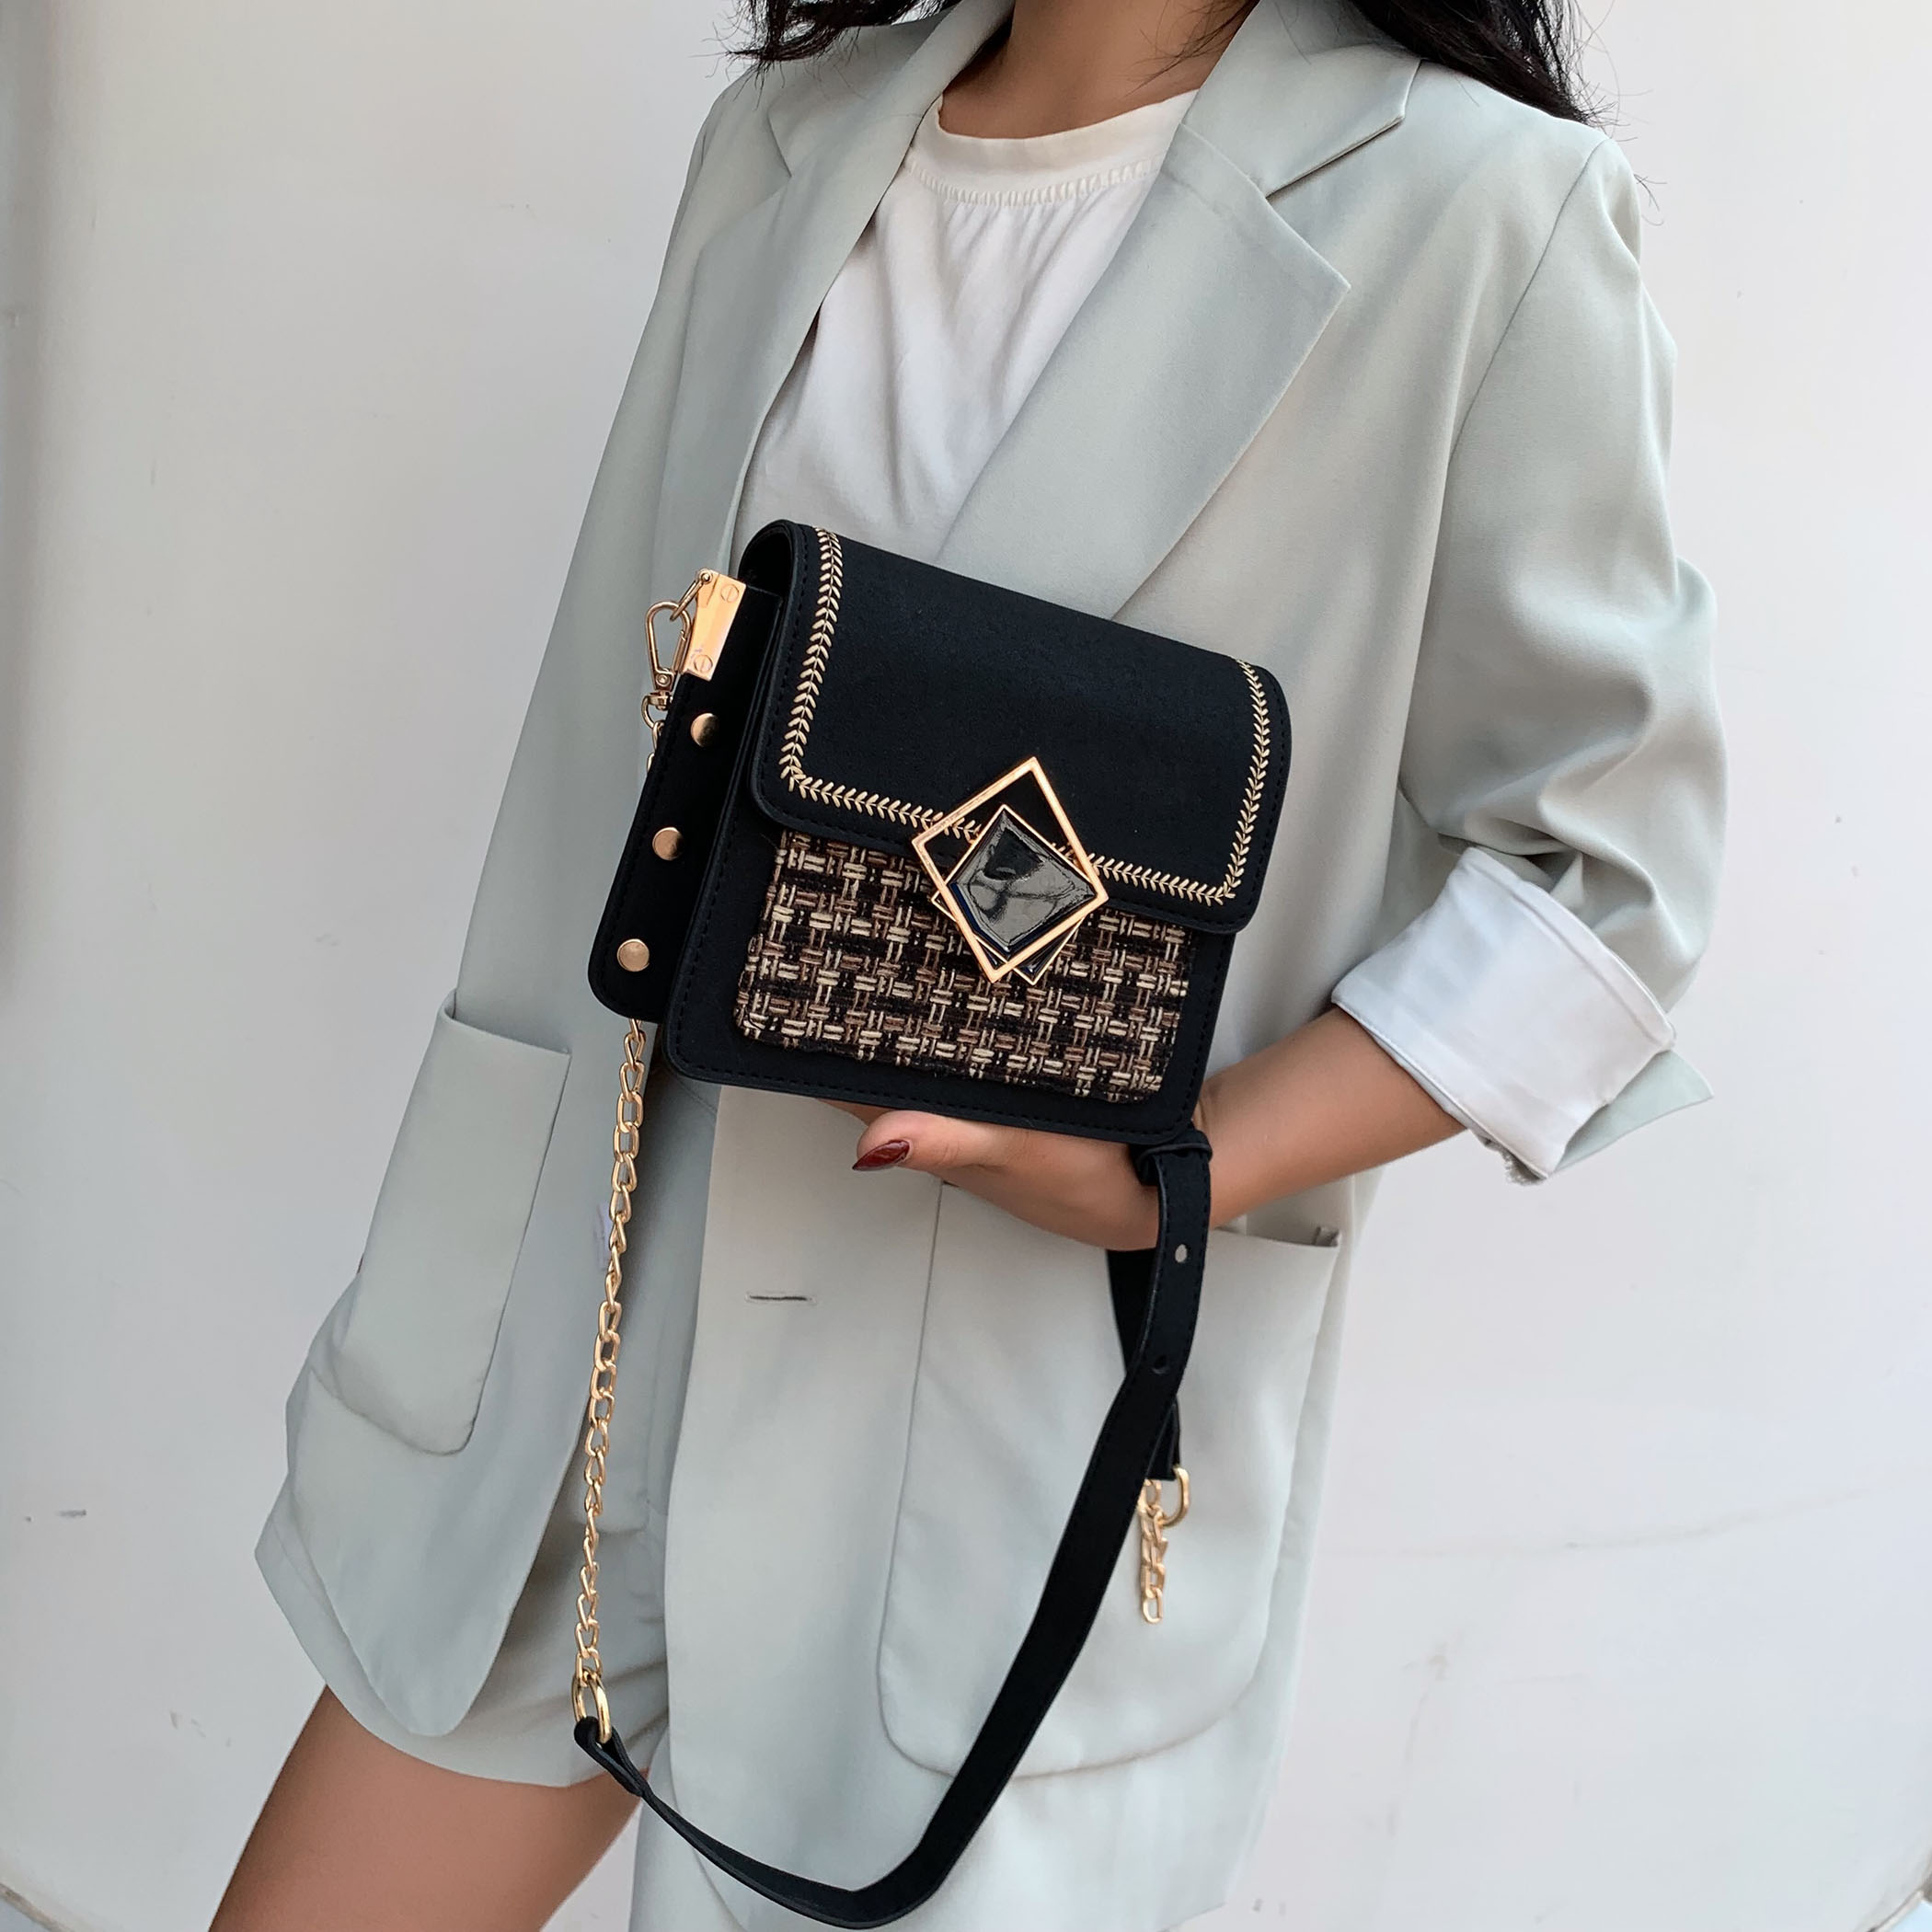 Scrub Leather Weave Crossbody Bags For Women 2021 Fall Chain Shoulder Simple Bag Female Luxury Handbags and Purses